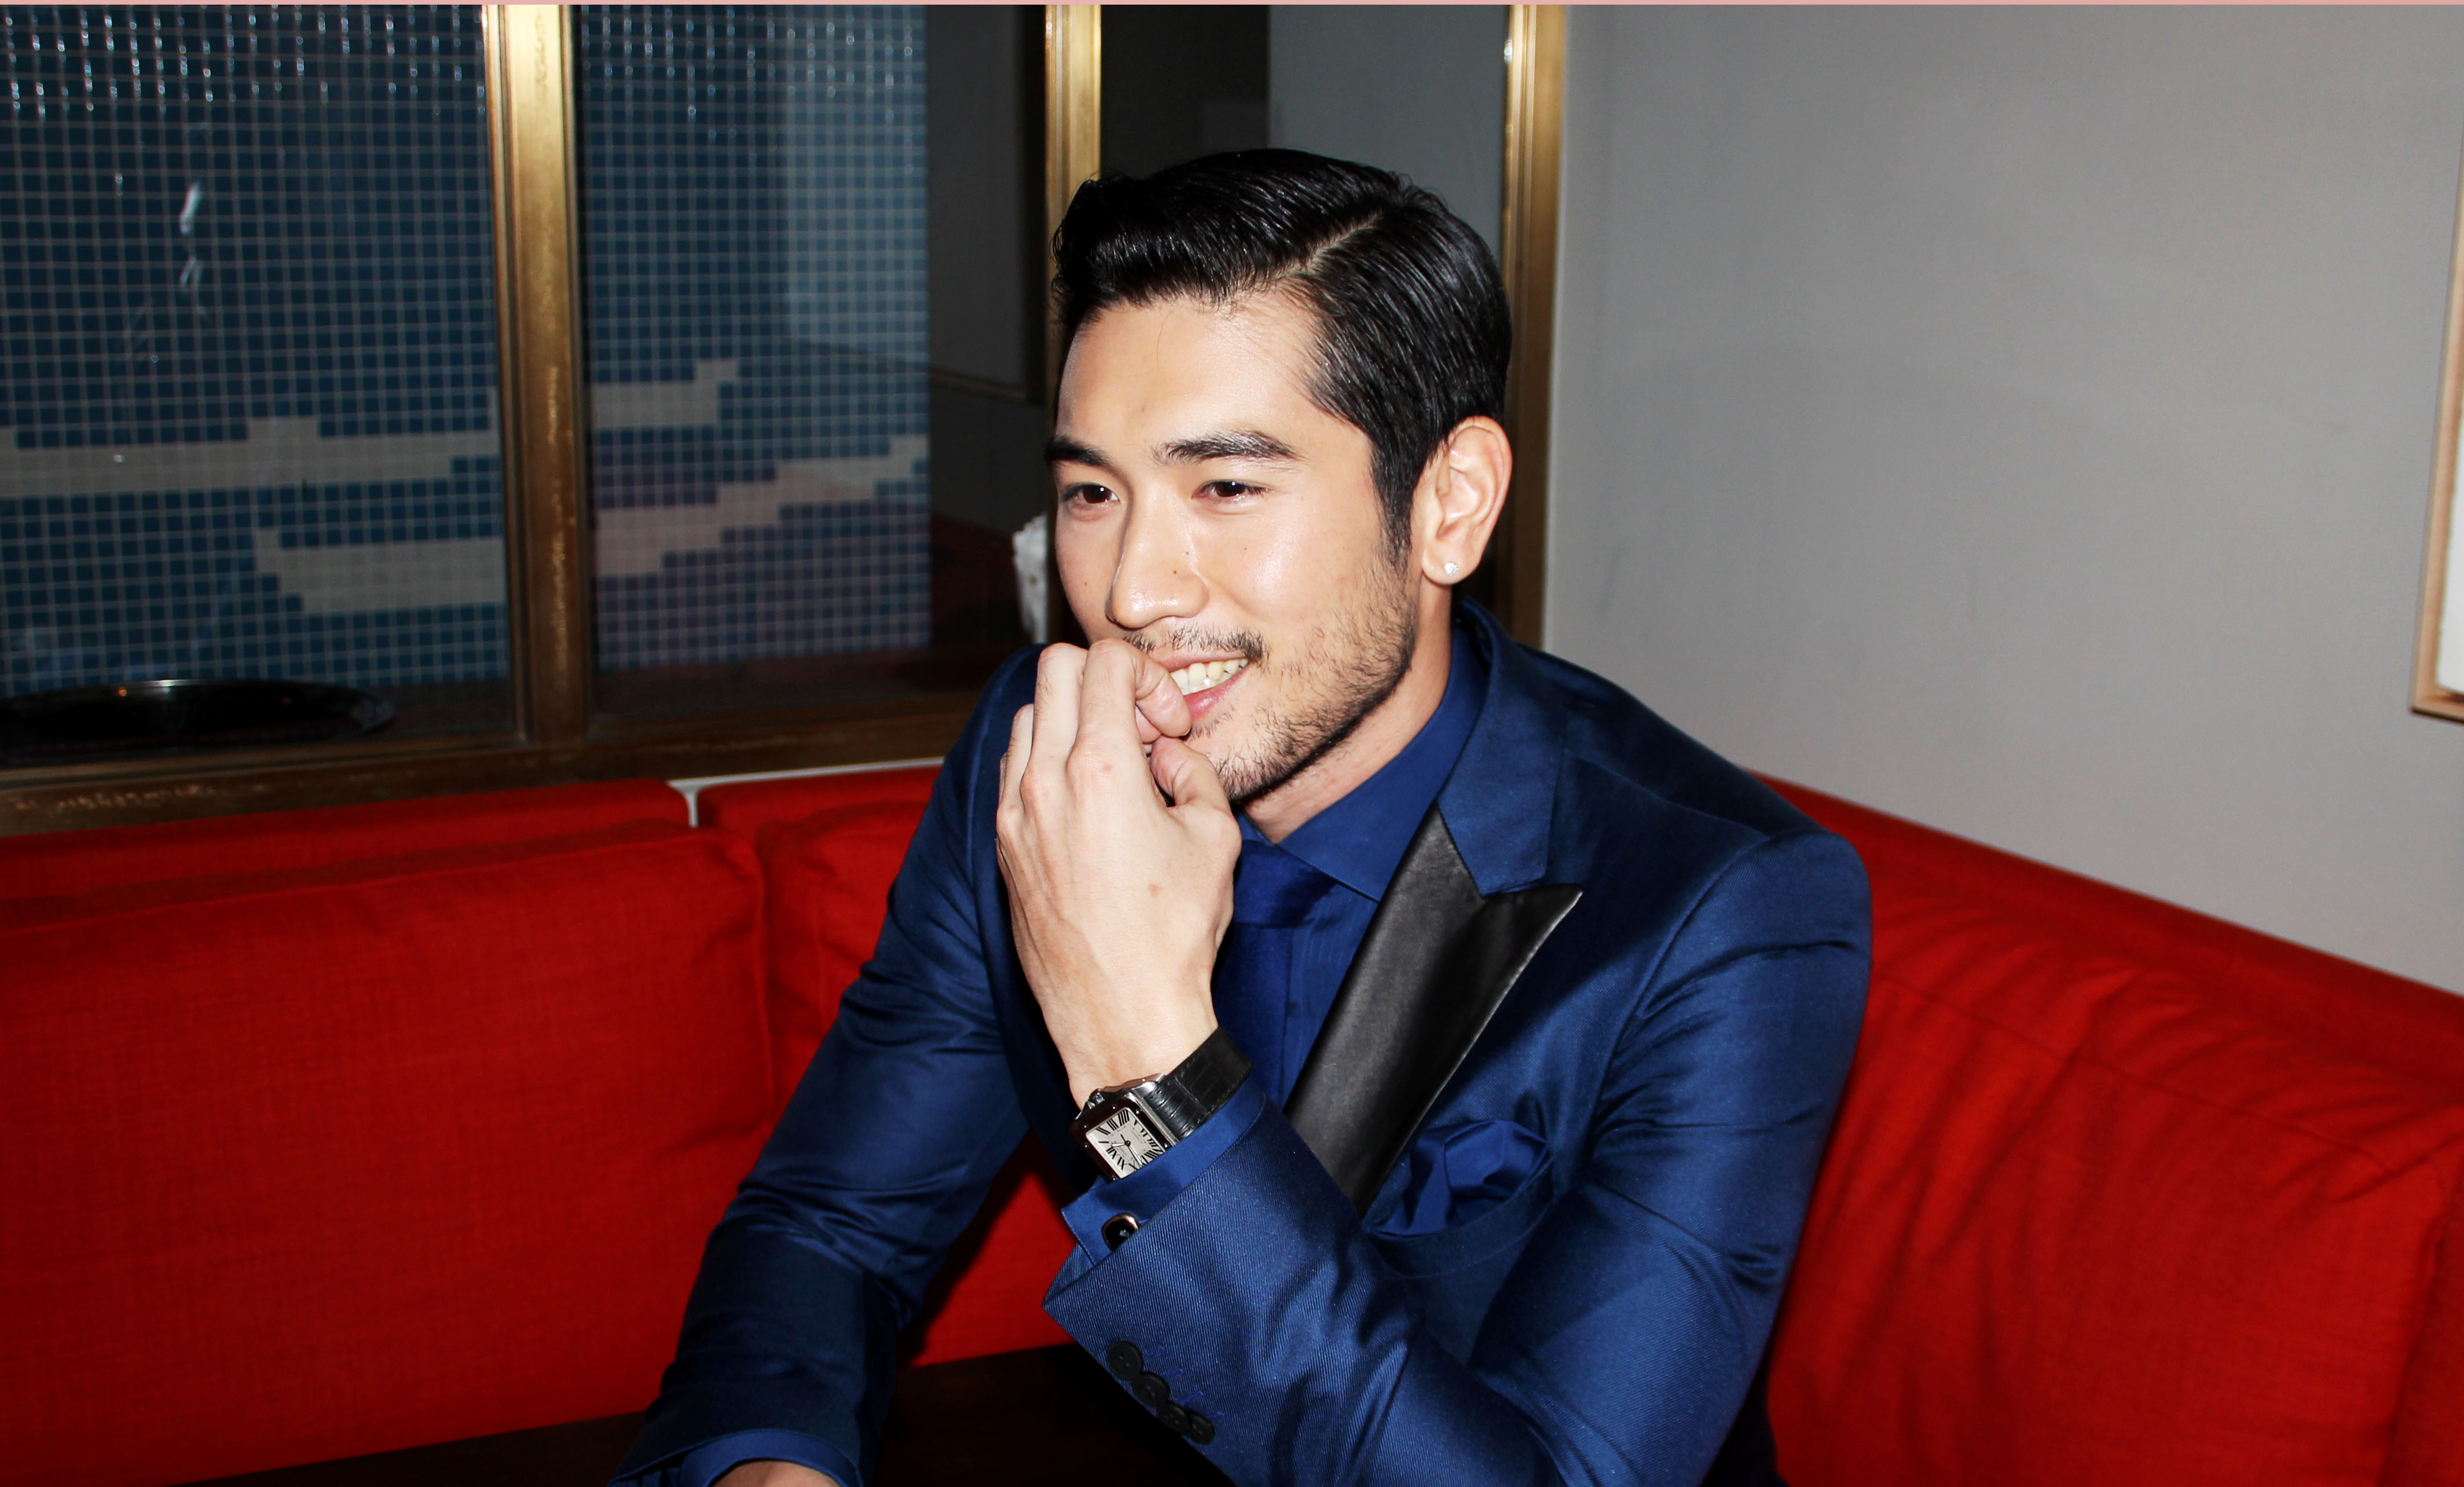 godfrey gao louis vuittongodfrey gao instagram, godfrey gao gif, godfrey gao fan art, godfrey gao height, godfrey gao gif hunt, godfrey gao dizileri, godfrey gao gallery, godfrey gao restaurant, godfrey gao harper's bazaar, godfrey gao twitter, godfrey gao pinterest, godfrey gao dating history, godfrey gao, godfrey gao louis vuitton, godfrey gao facebook, godfrey gao snapchat, godfrey gao wikipedia, godfrey gao interview, godfrey gao 2015, godfrey gao bio